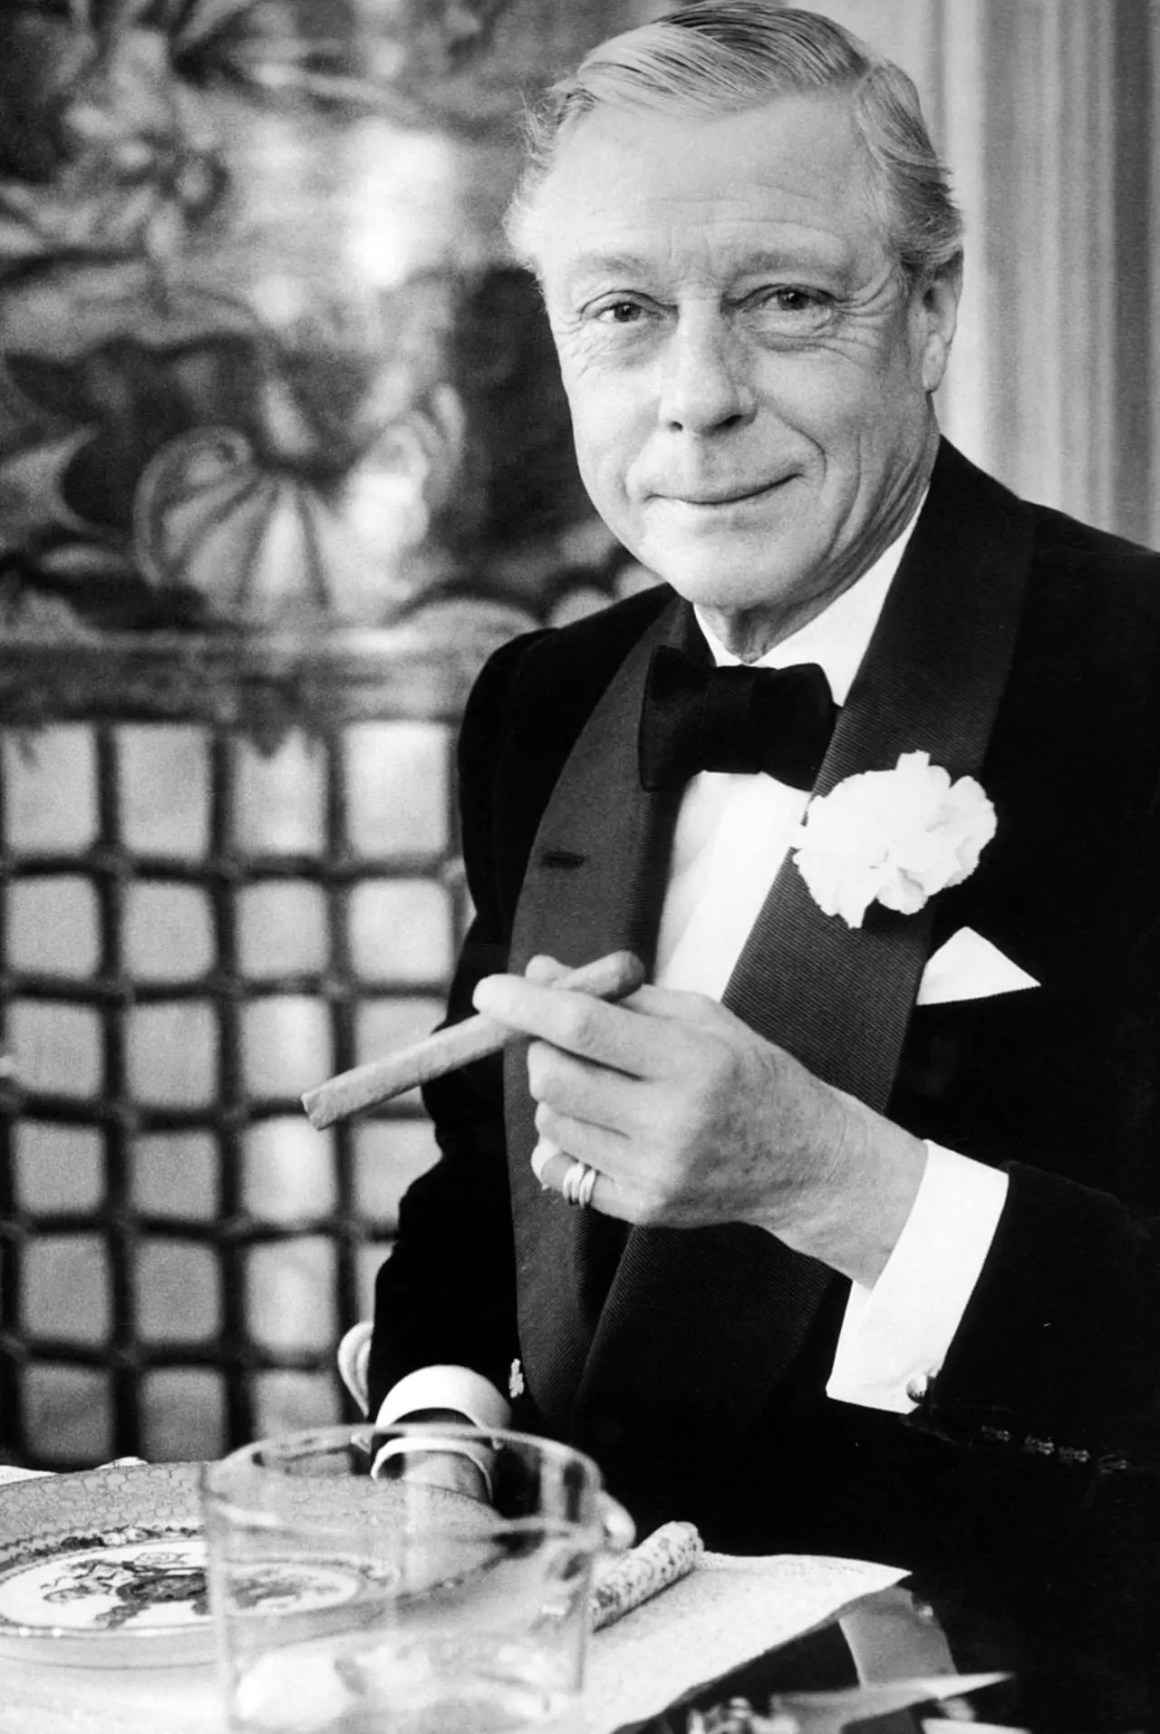 Edward VIII in Black Tie dress